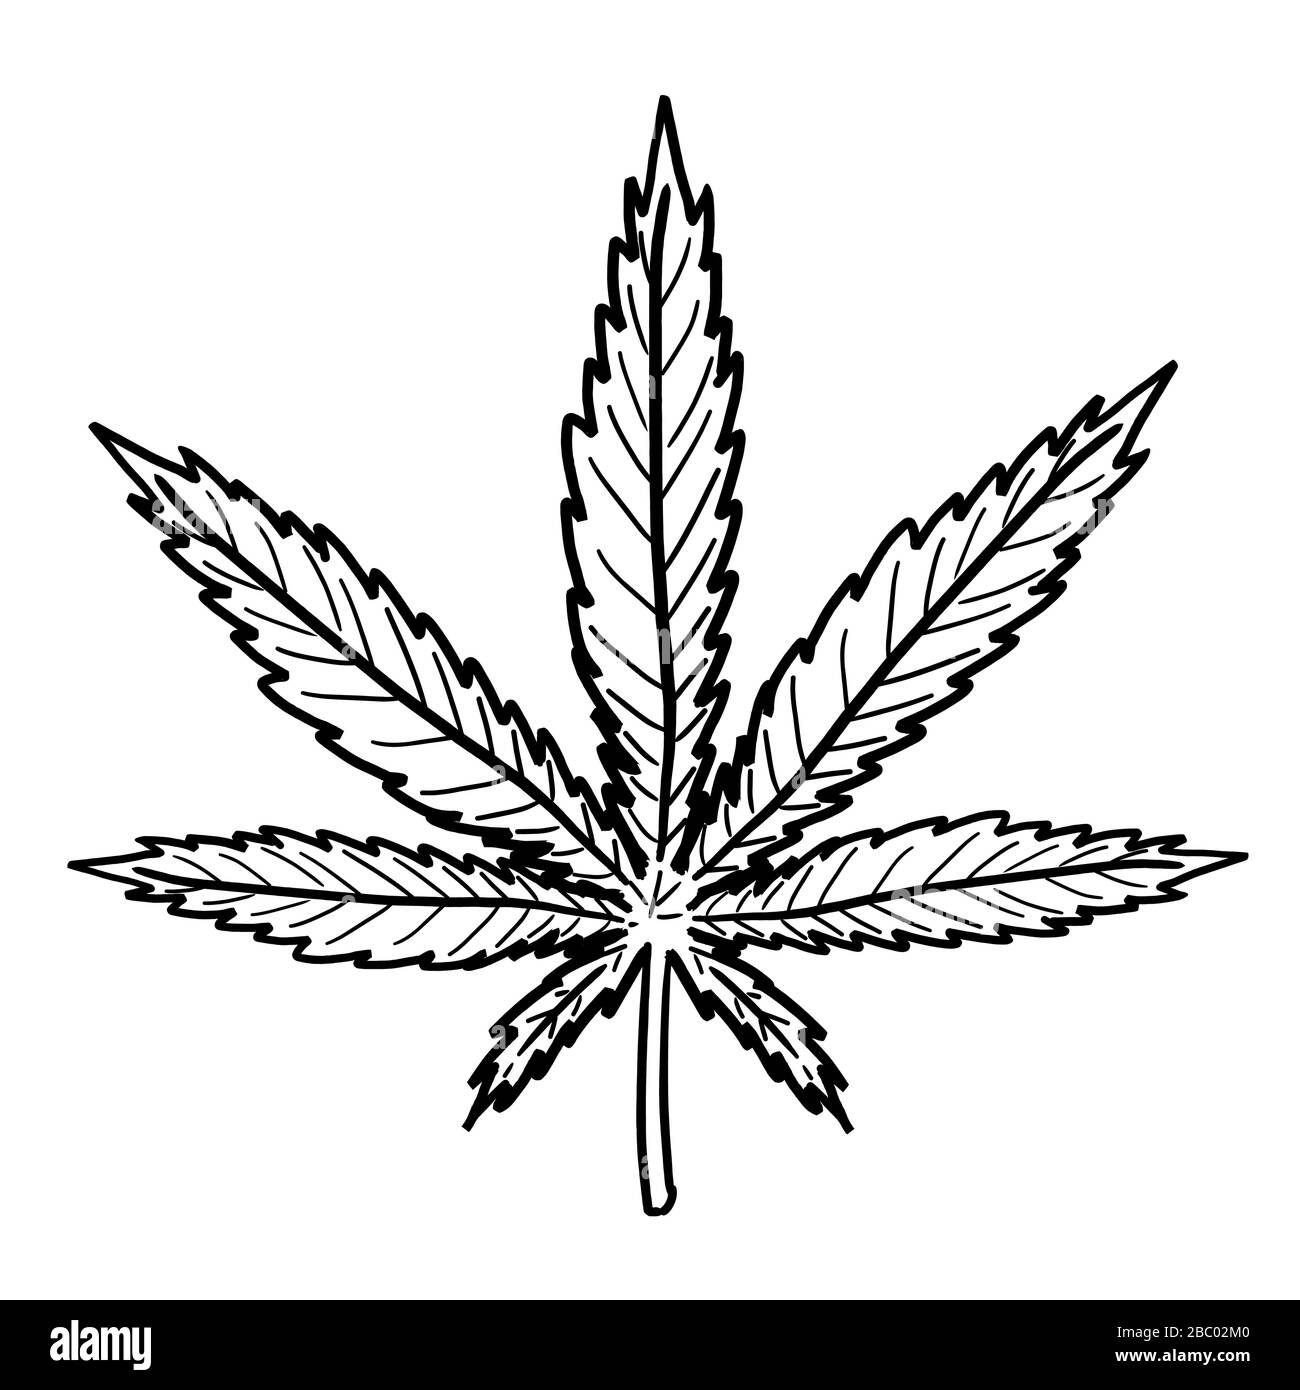 Marijuana Leaf Drawing Simple Hemp Symbol Vector Stock Vector Image Art Alamy